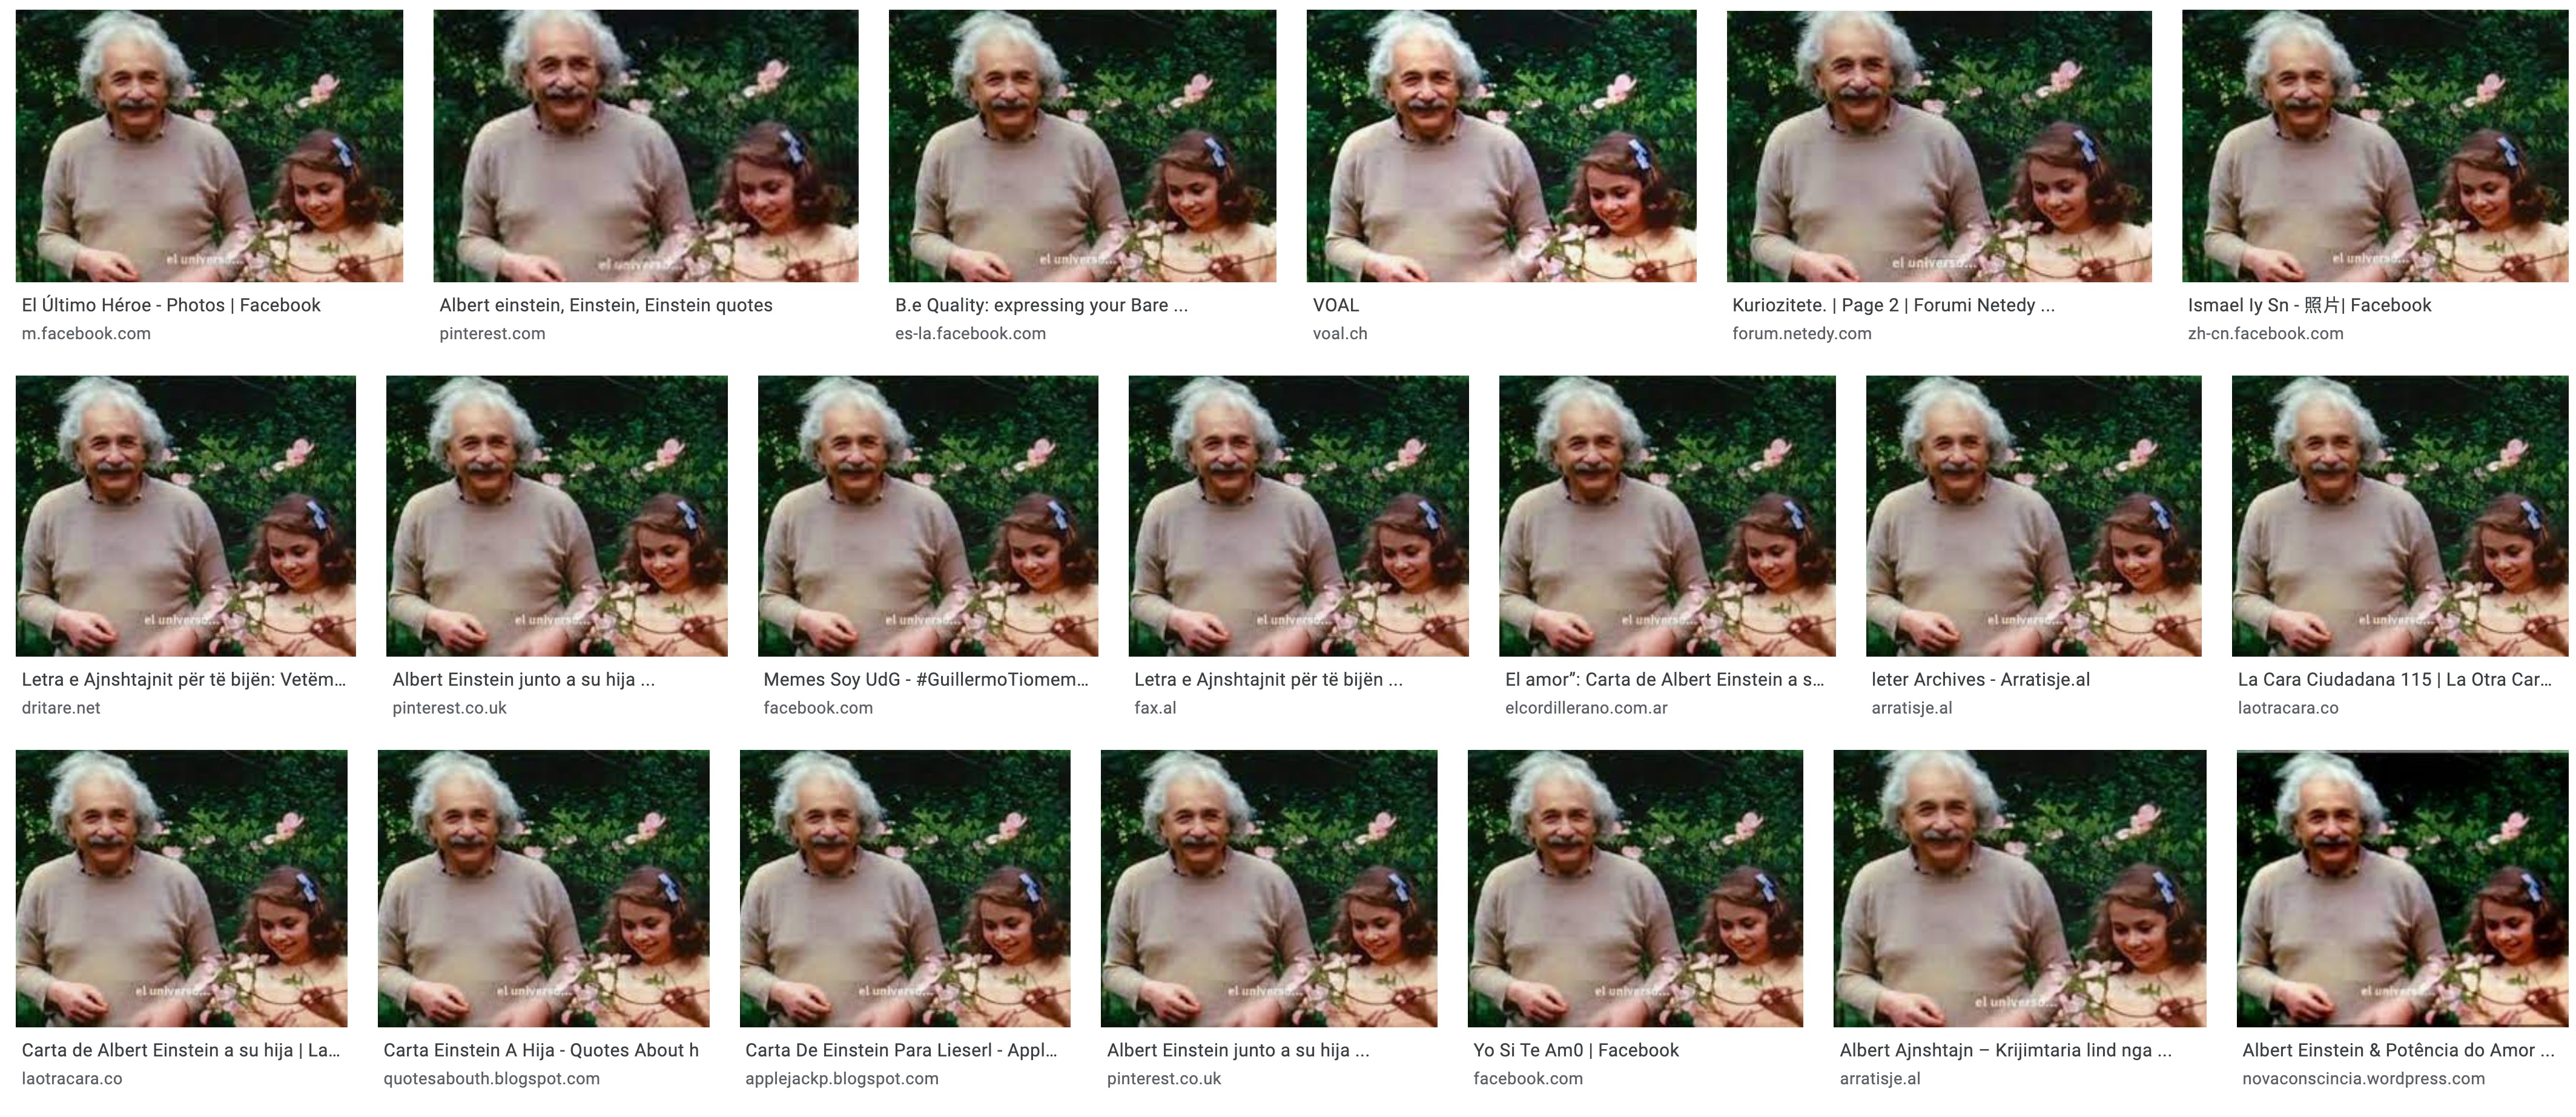 'Lieserl Einstein Donated 1,400 Lost Letters,' 'The Universal Force Is Love' Facebook Post